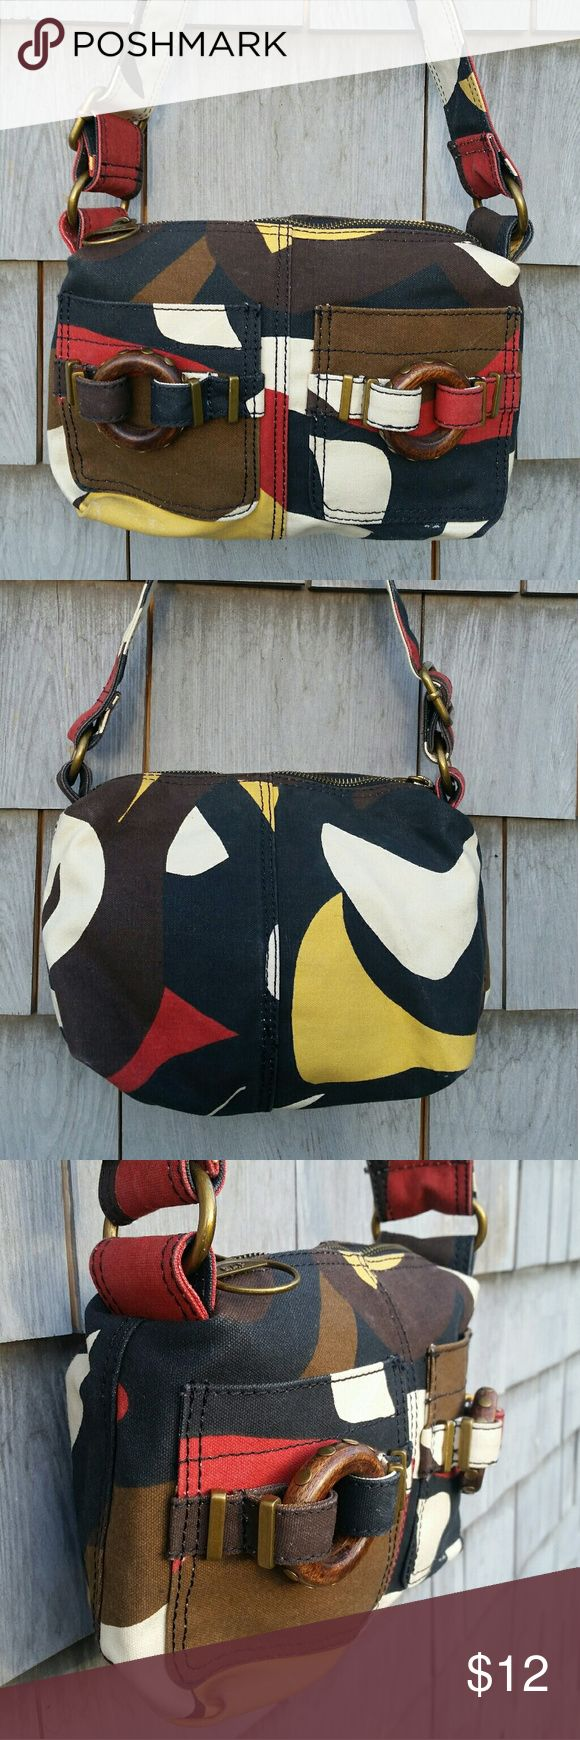 Gap canvas purse Bohemian vibe Gap purse, great for casual weekend. Fun funky look. Excellent condition no rips or stains All zippers work.  Smoke free home. Gap  Bags